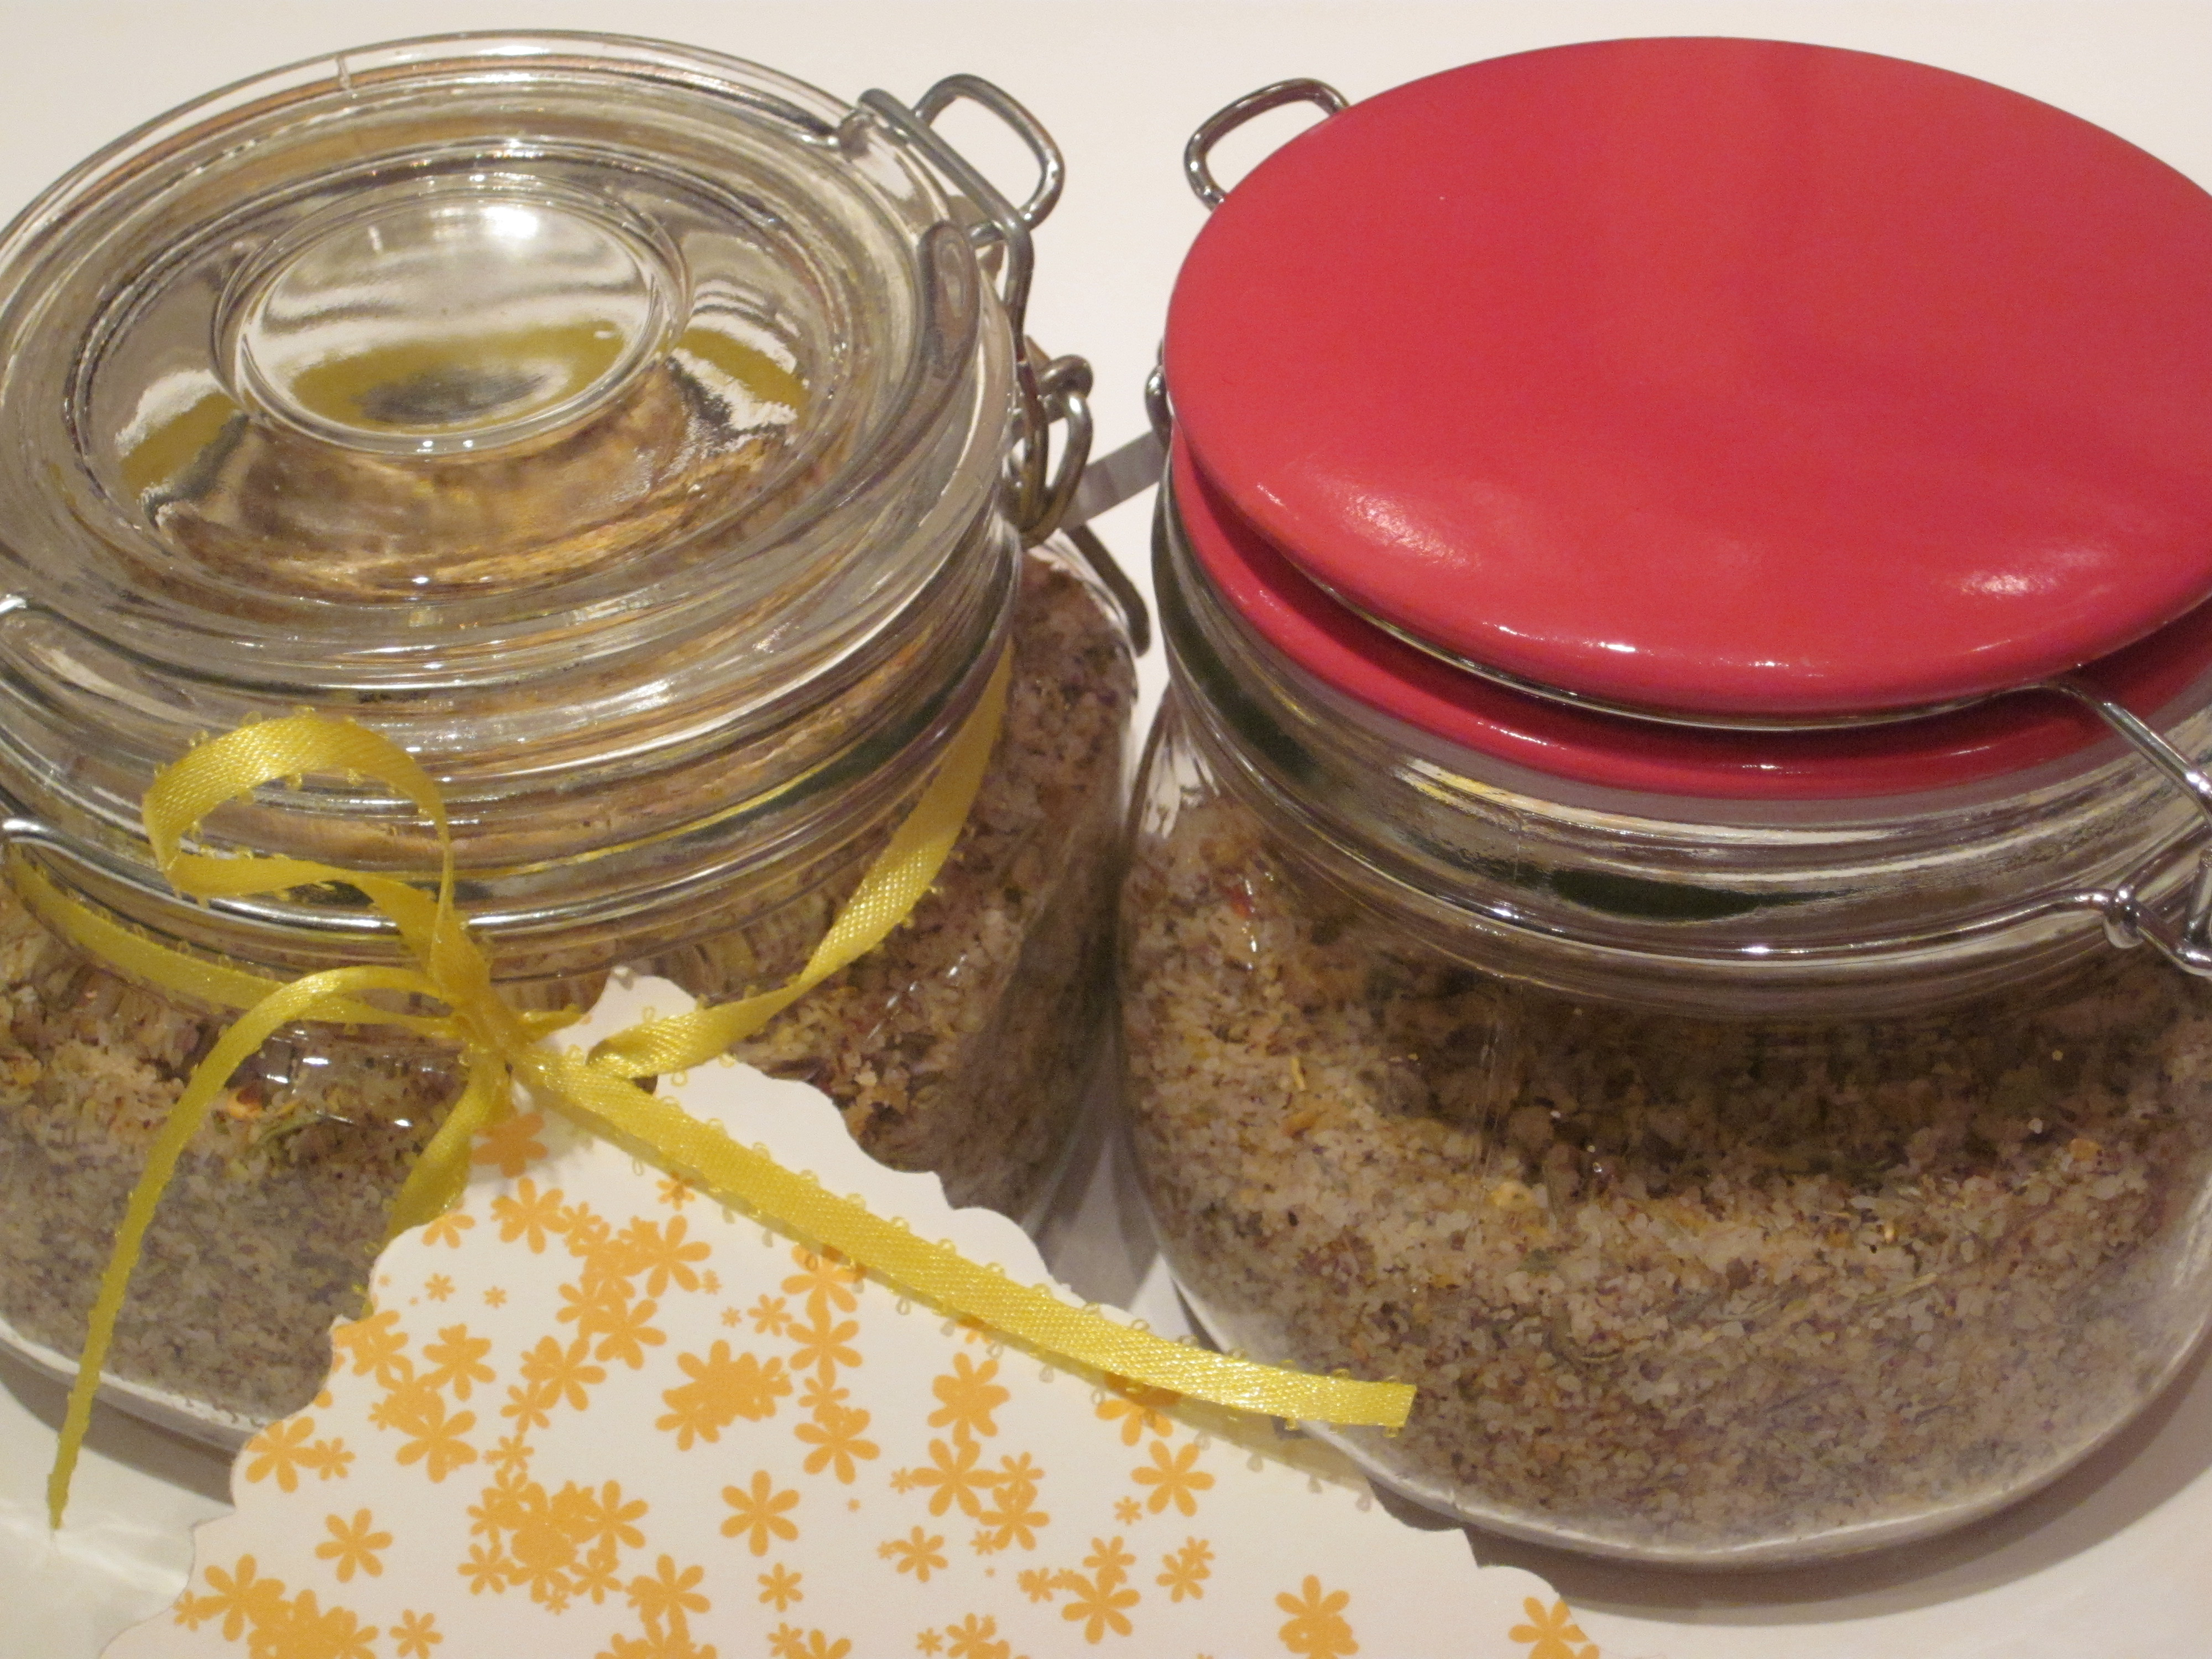 recipe myrecipes citrus salt body scrub inspiration rose citrus salt ...